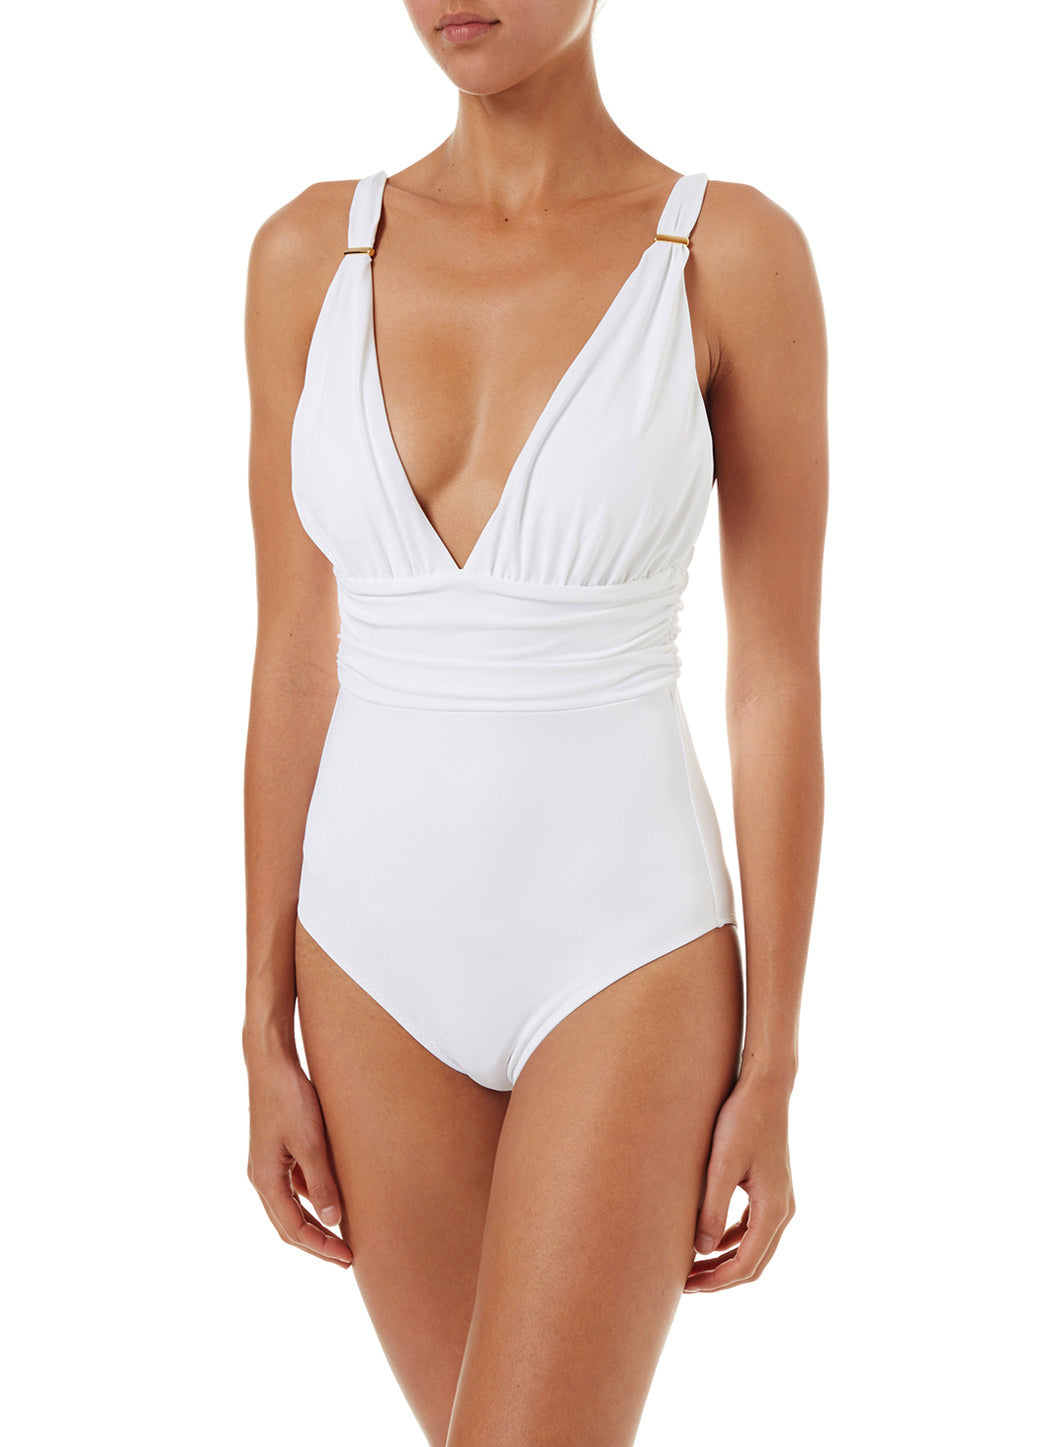 Panarea White Classic Over The Shoulder Ruched Swimsuit